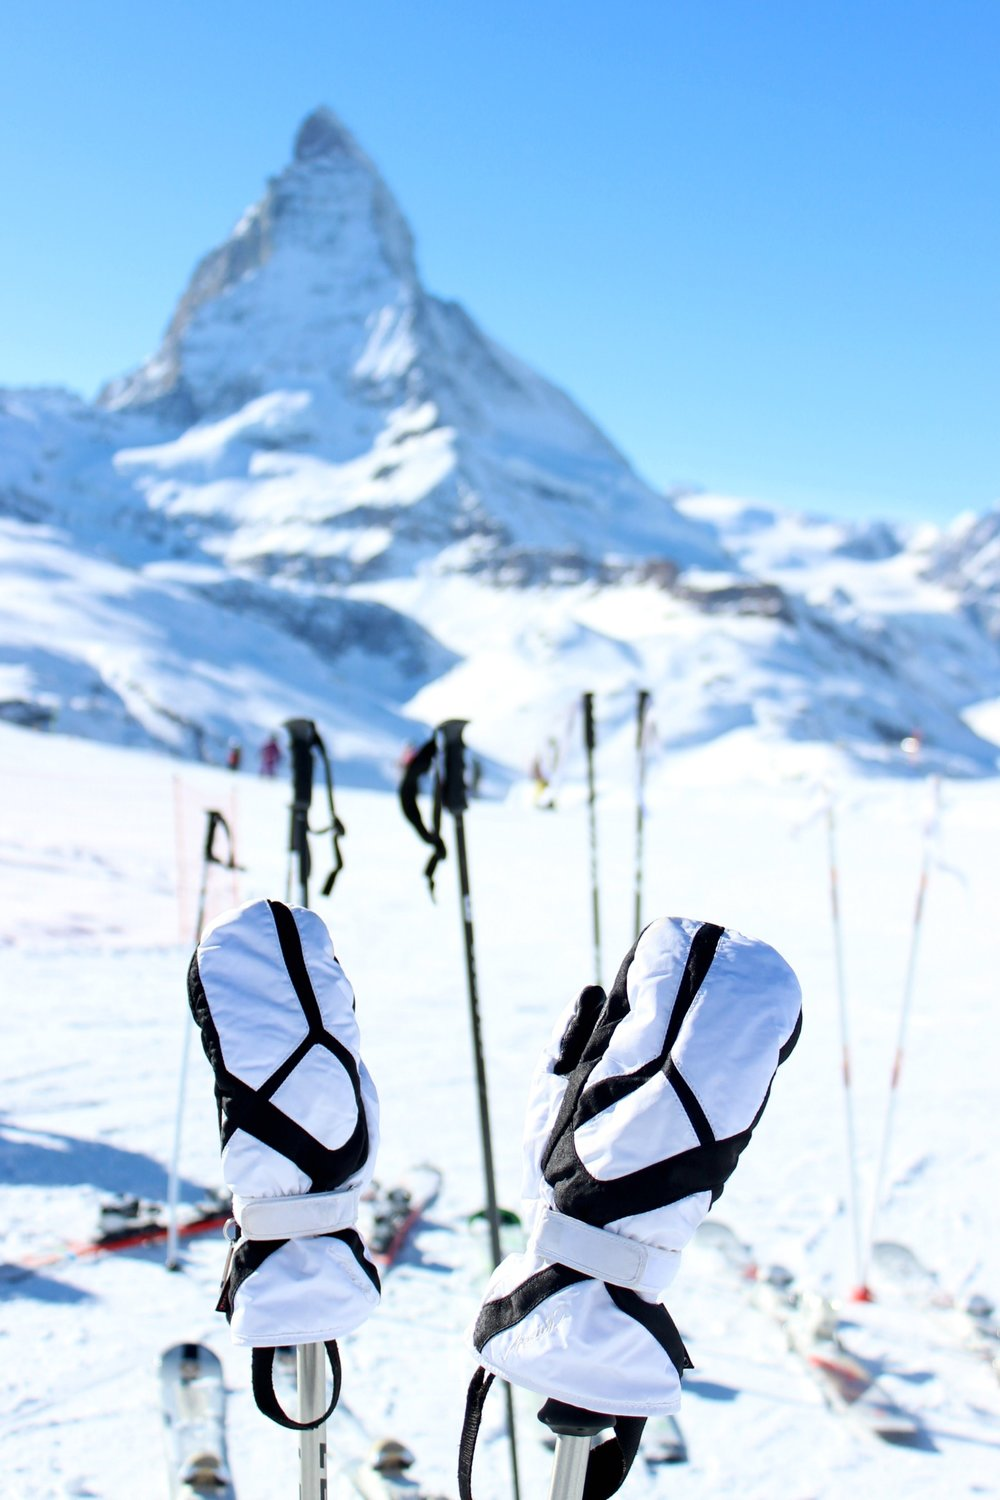 snow-matterhorn-ski-blue-sky-gloves-on-sticks-black-white.jpg